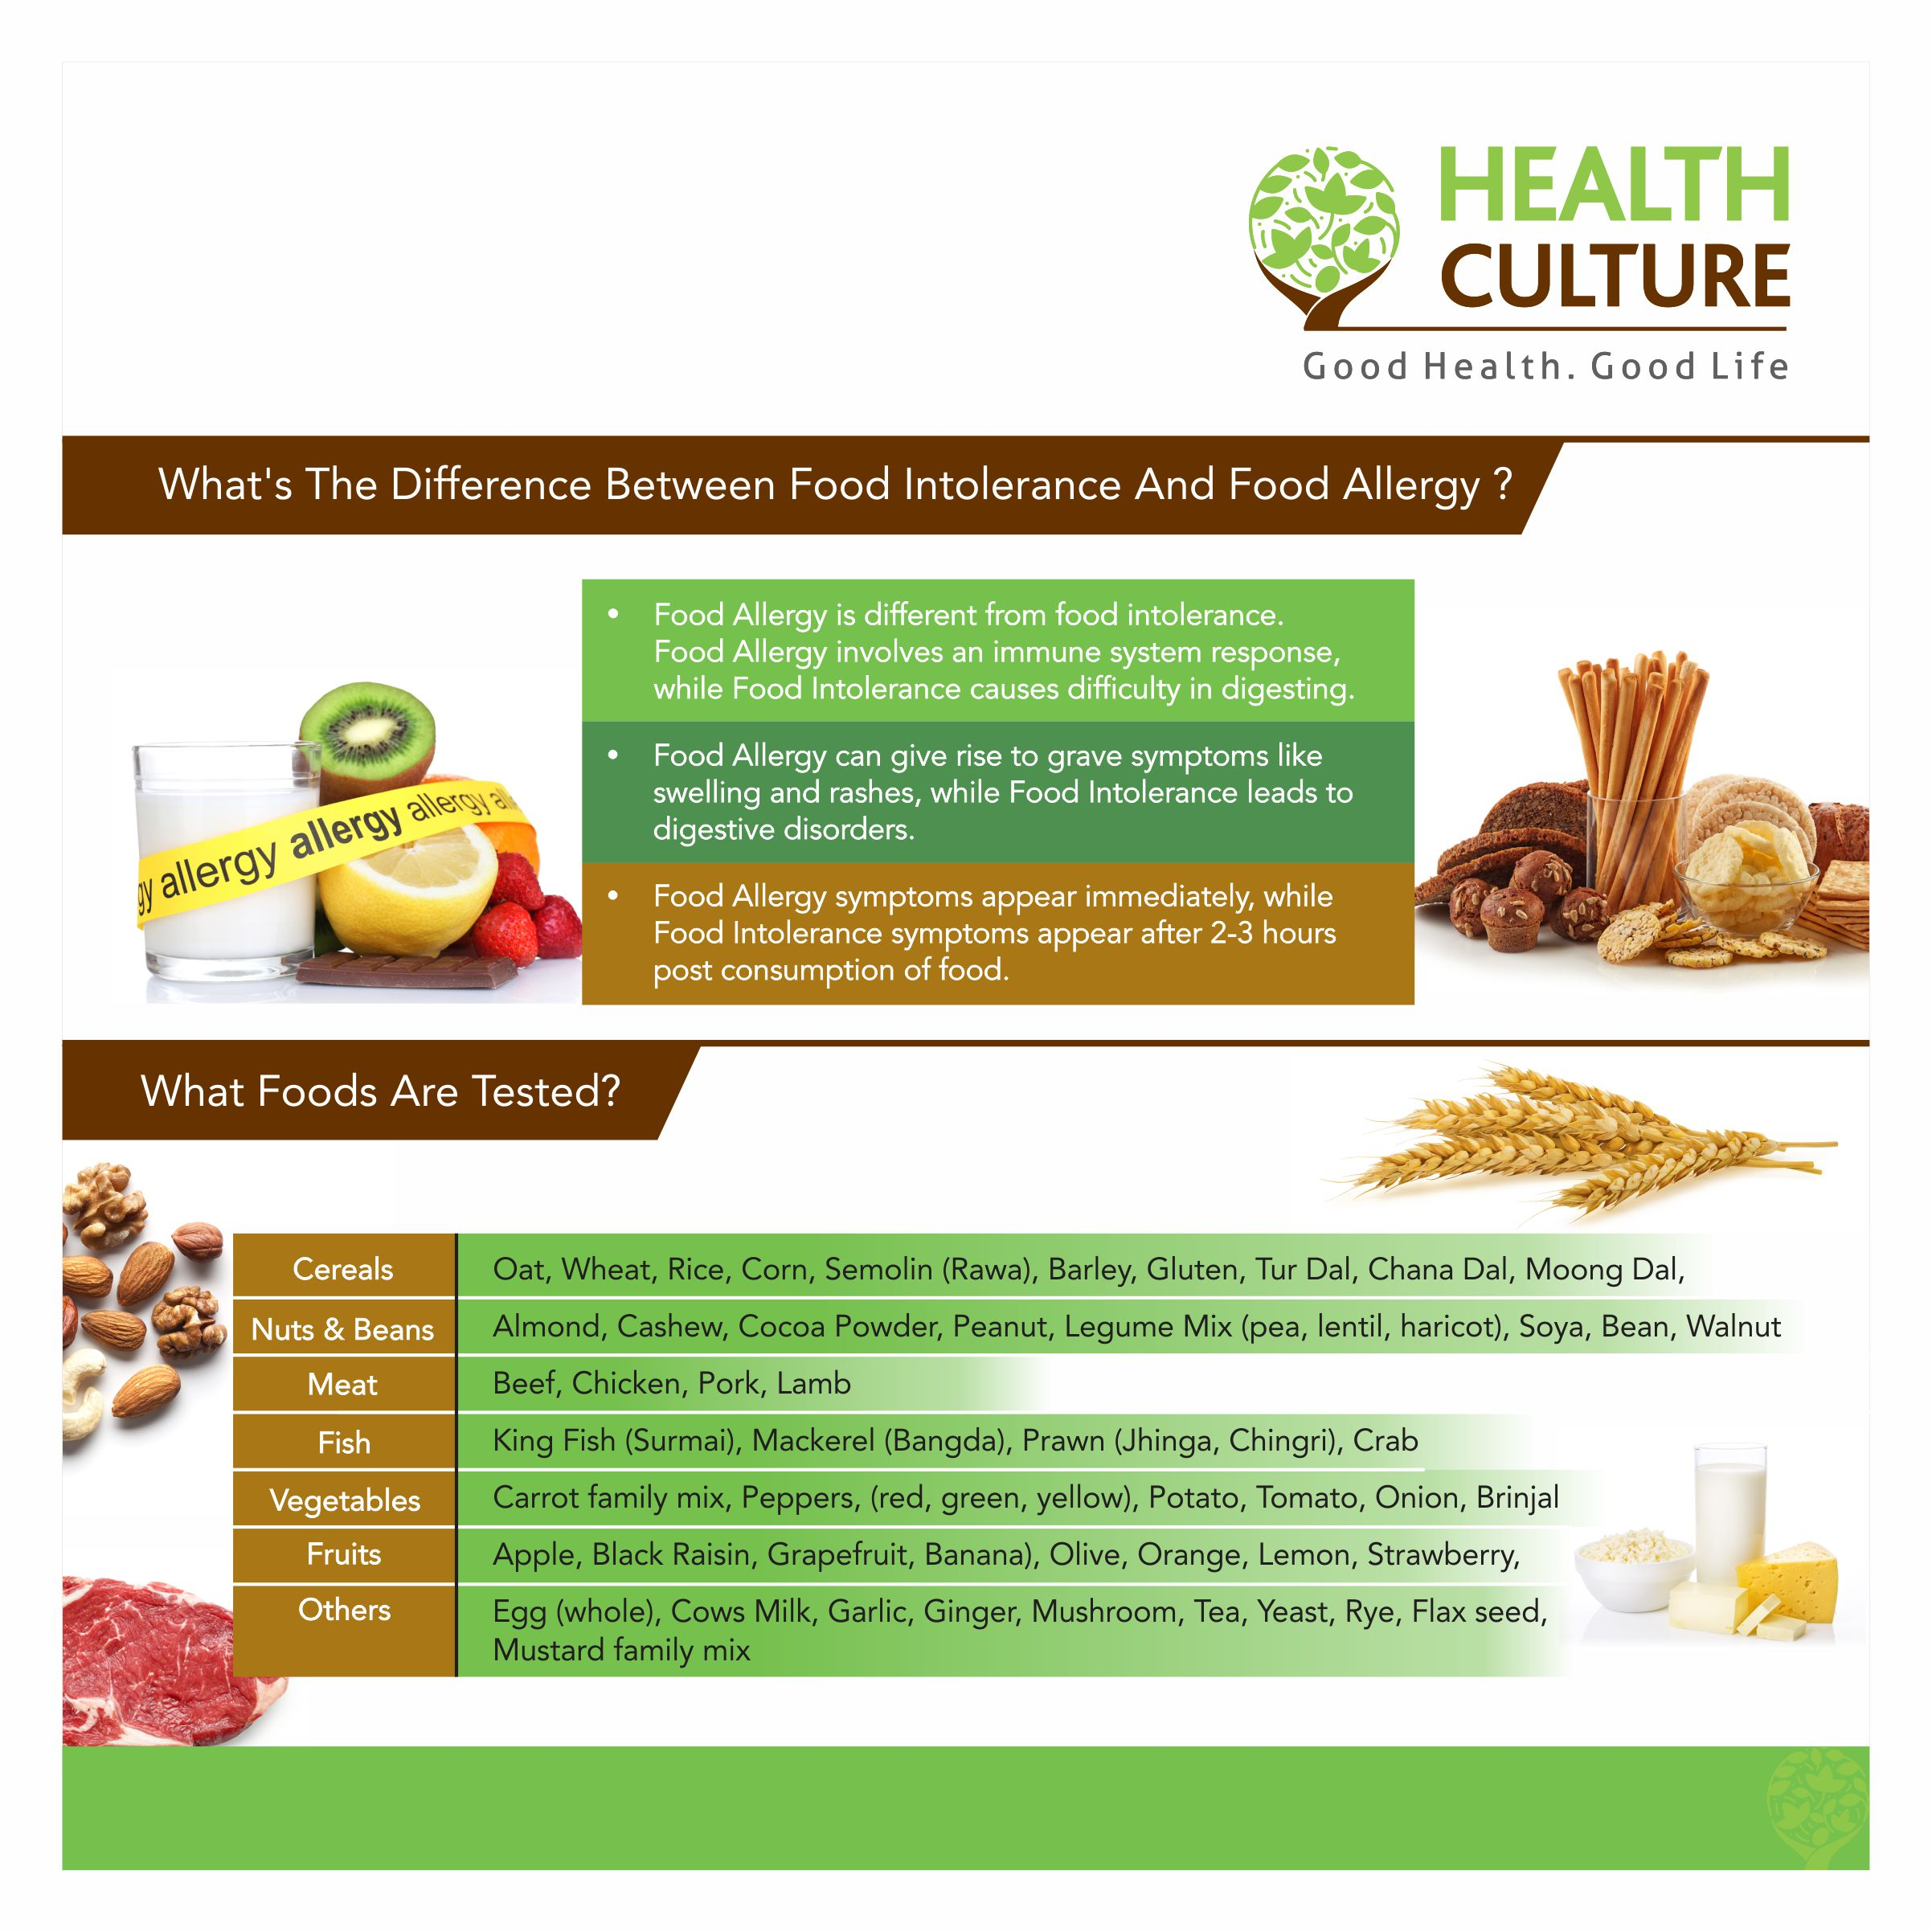 Difference between Food Intolerance and Food Allergy Article - Health Culture